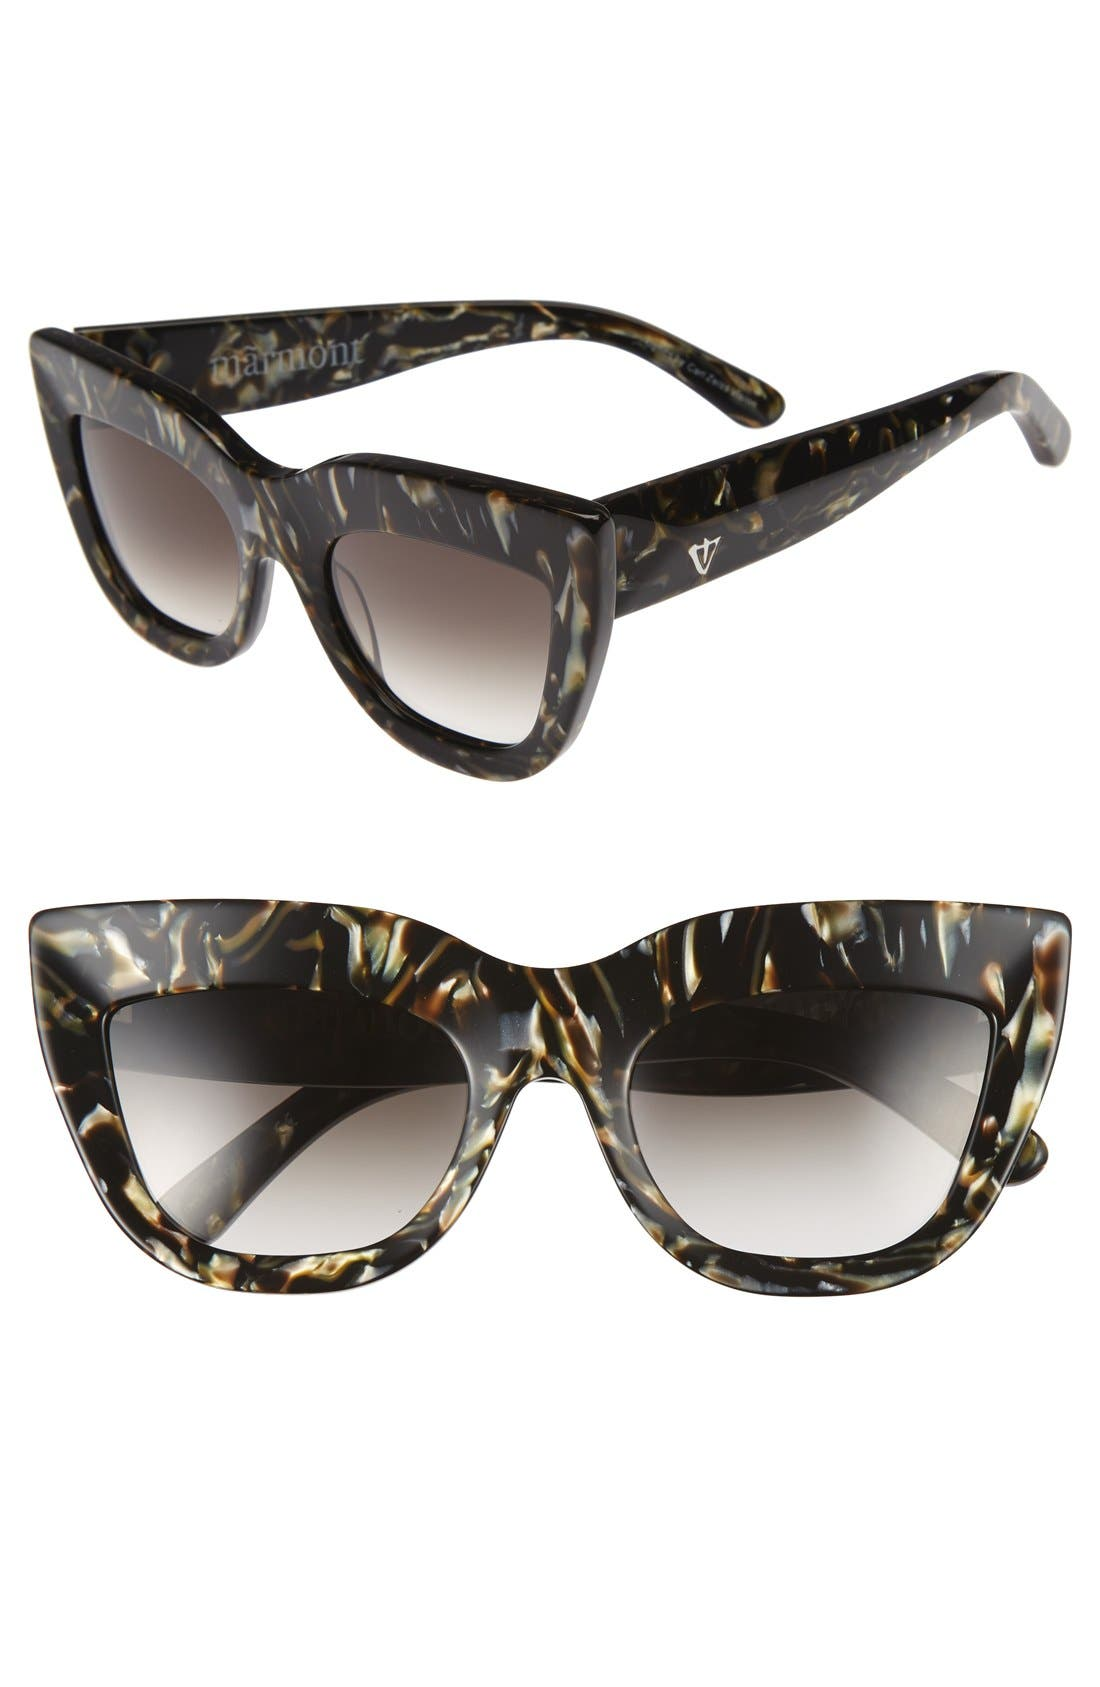 Alternate Image 1 Selected - VALLEY Marmont 52mm Cat Eye Sunglasses